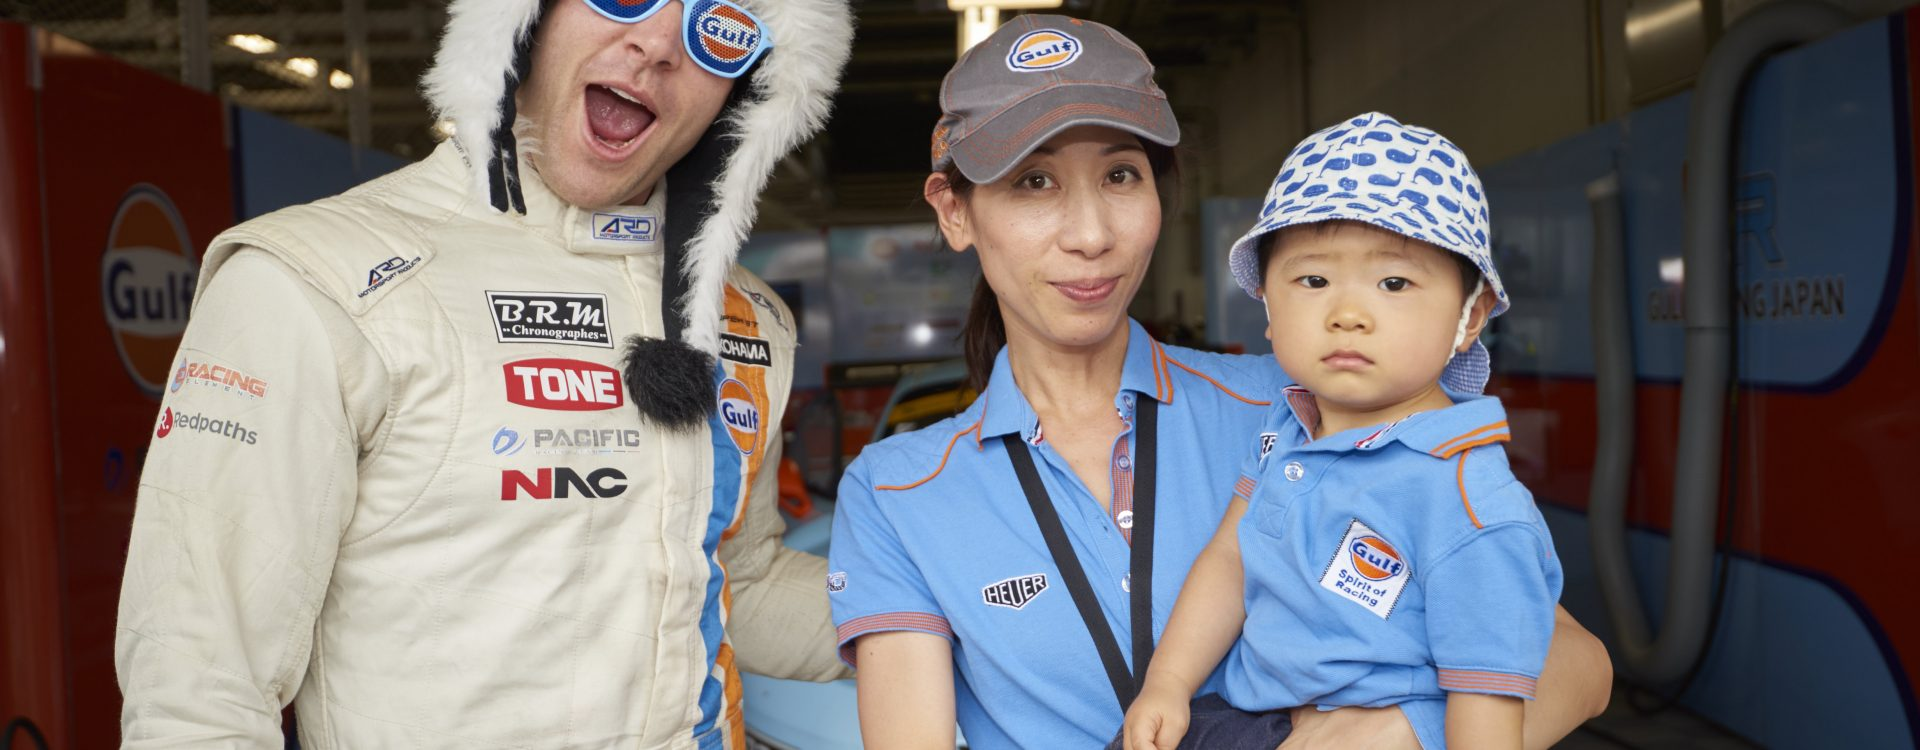 Jono Lester with Gulf Racing fans